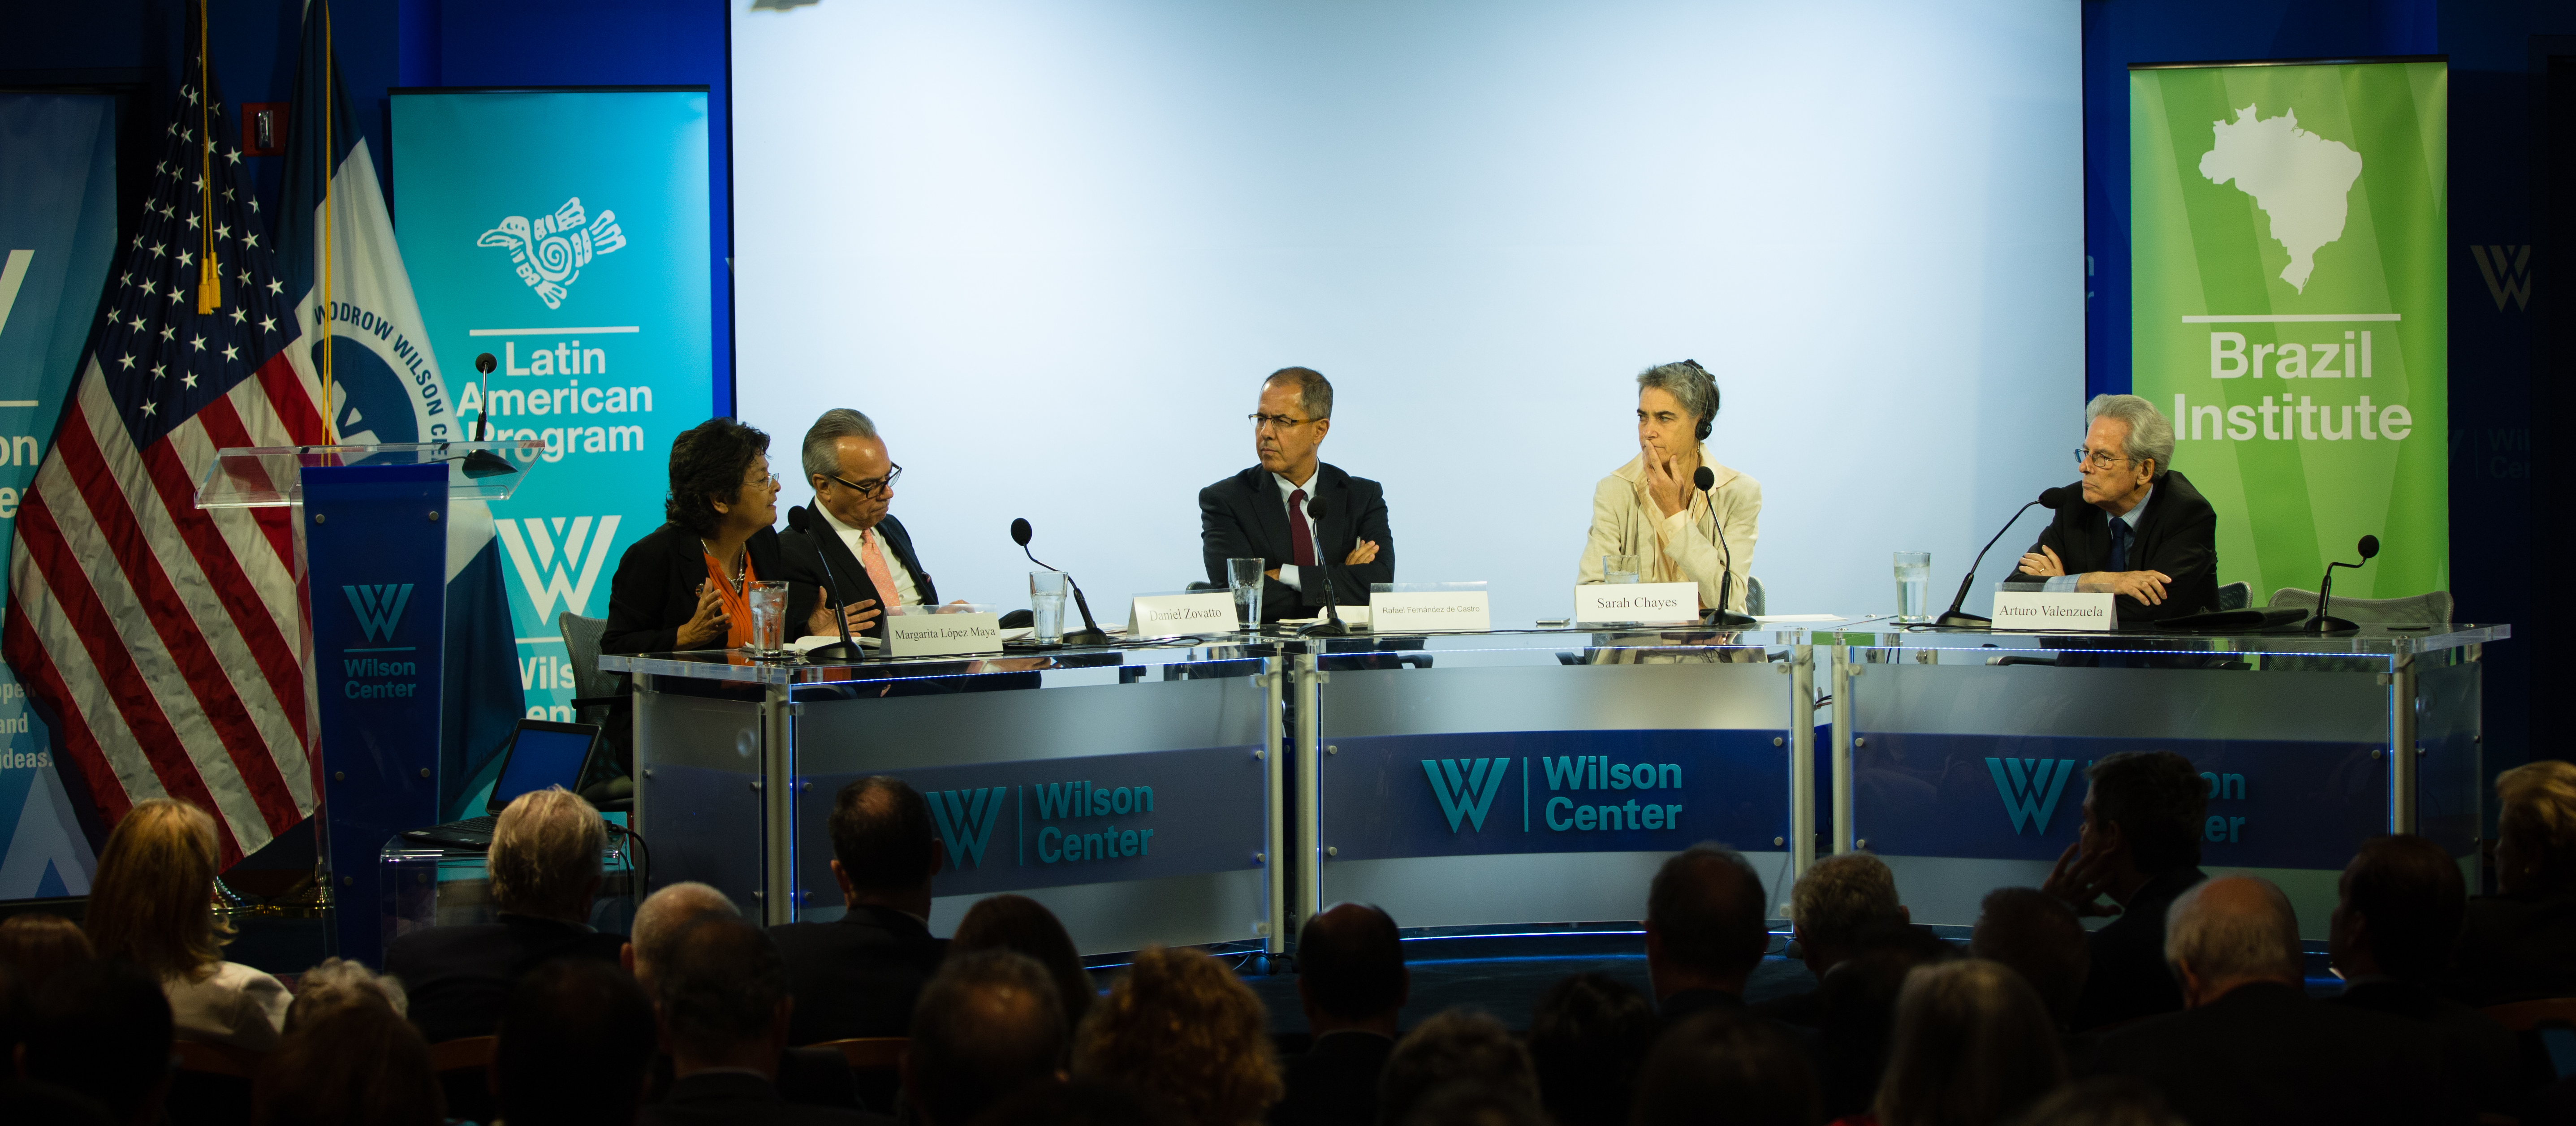 Daniel Zovatto (second from left) during his presentation; to his right Margarita López Maya of the UCV: to his left, Rafael Fernández de Castro of ITAM; Sarah Chayez of the Carnegie Endowment for International Peace, and Arturo Valenzuela of the Covington and Burling. Photo credit: International IDEA.